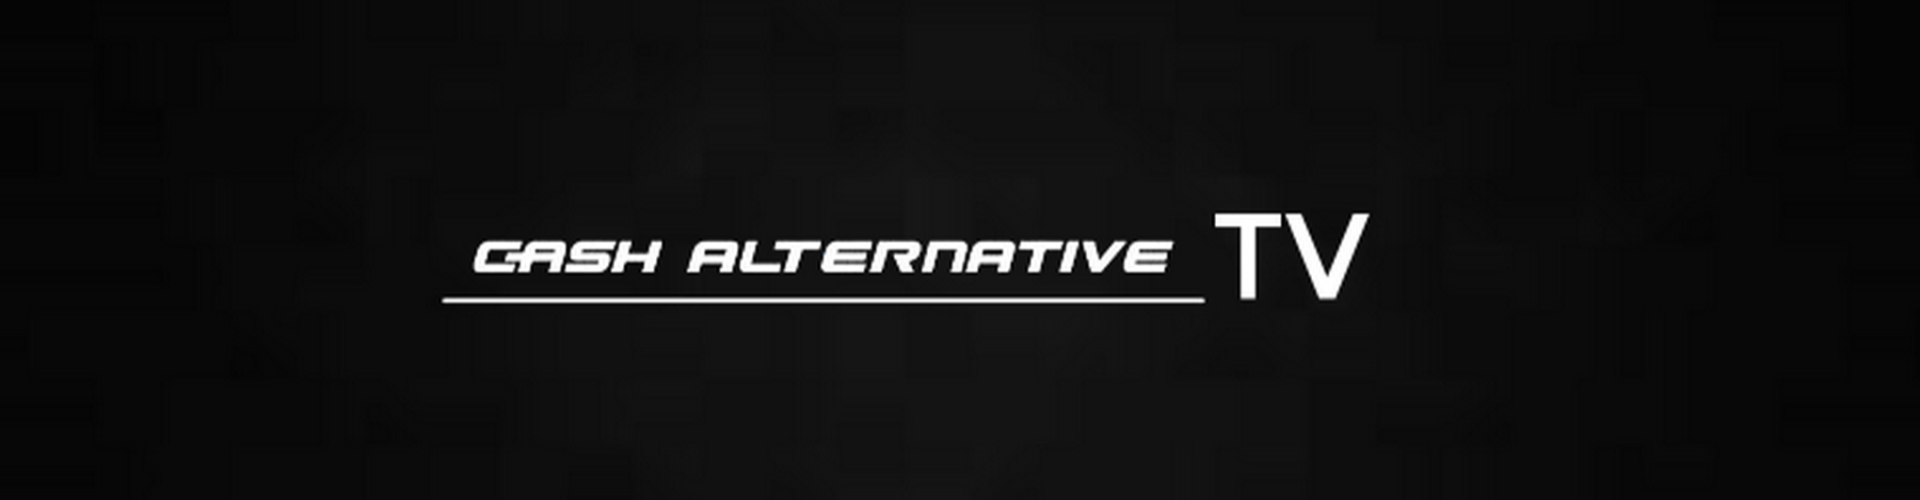 Cash Alternative TV